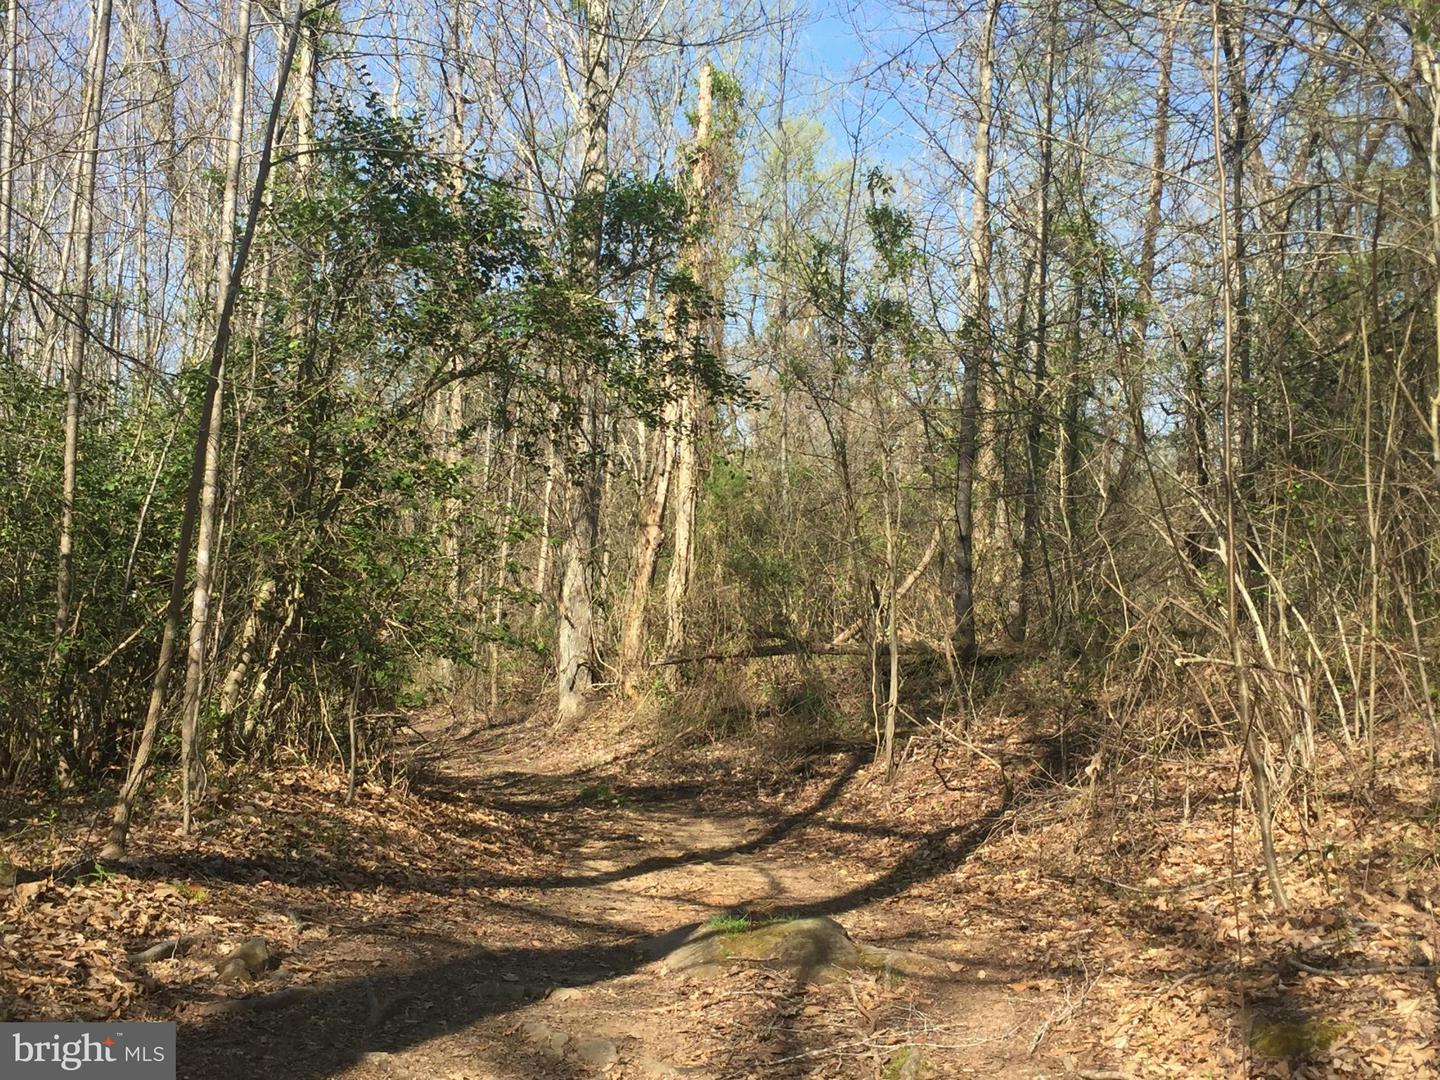 Land for Sale at Good Hope Church Rd Aroda, Virginia 22709 United States